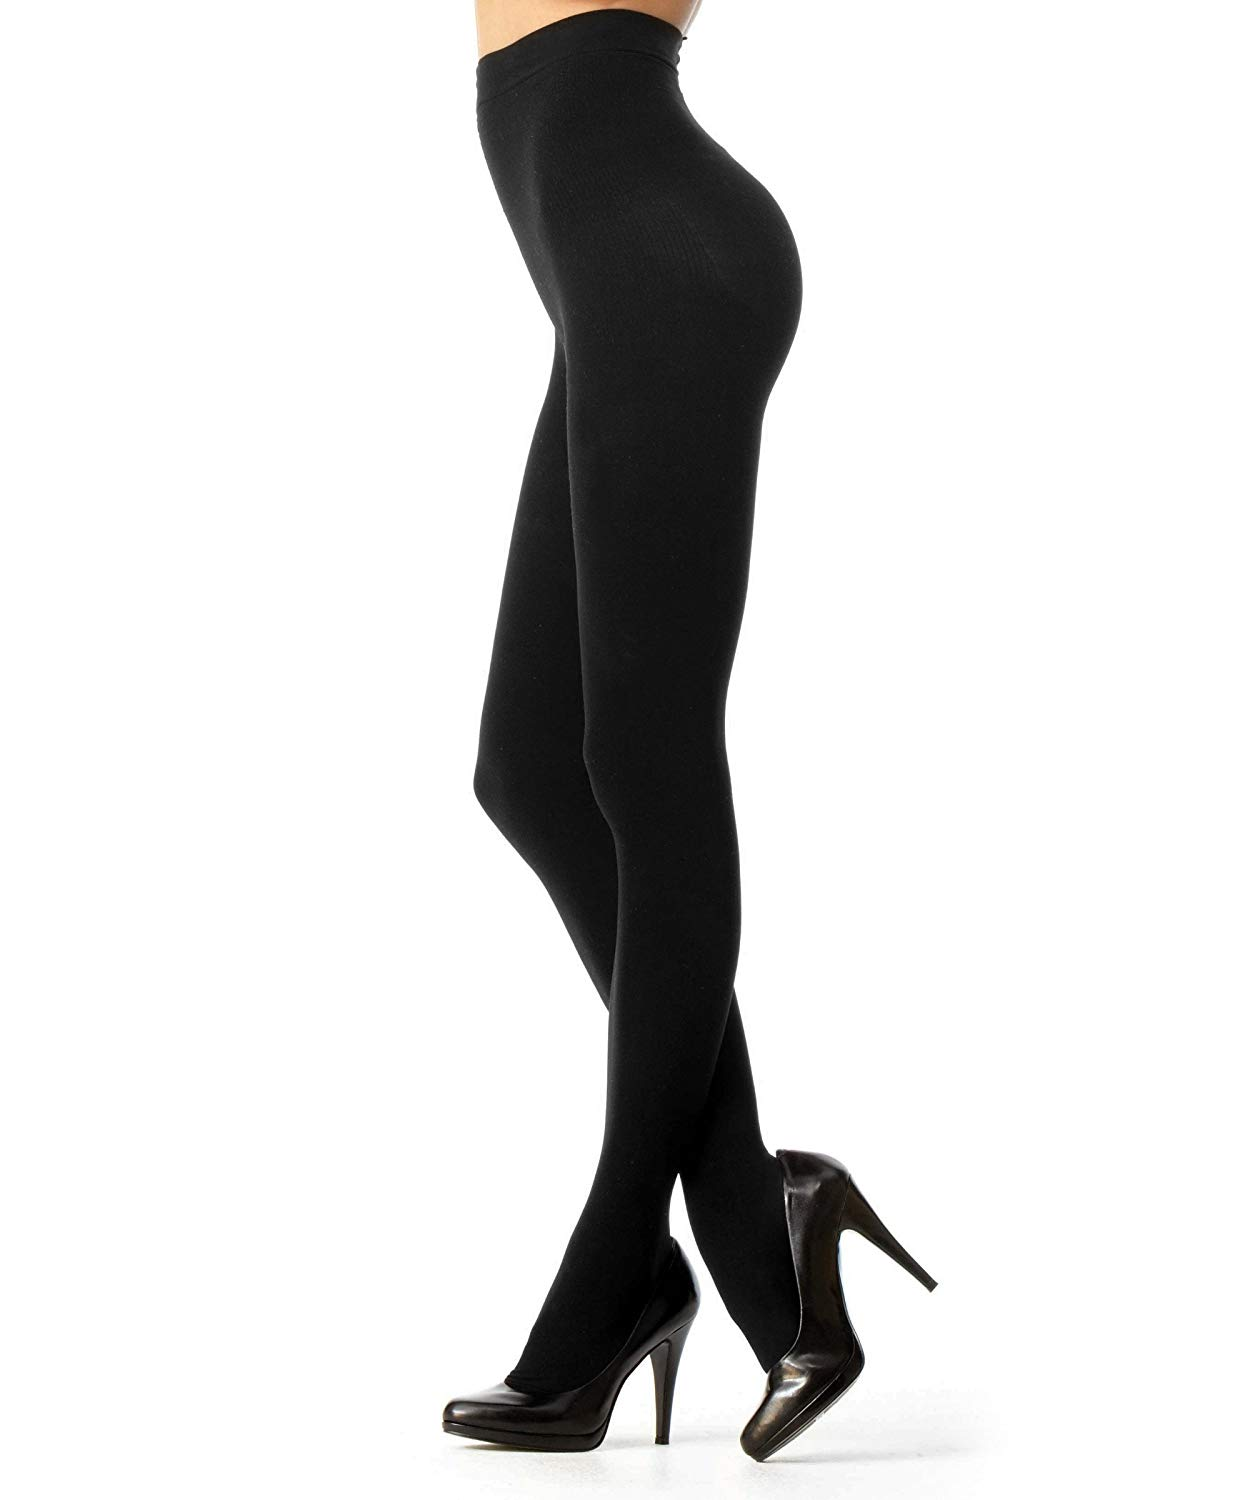 01208fb99cb Get Quotations · Melas Microfiber Opaque Shaper Tights